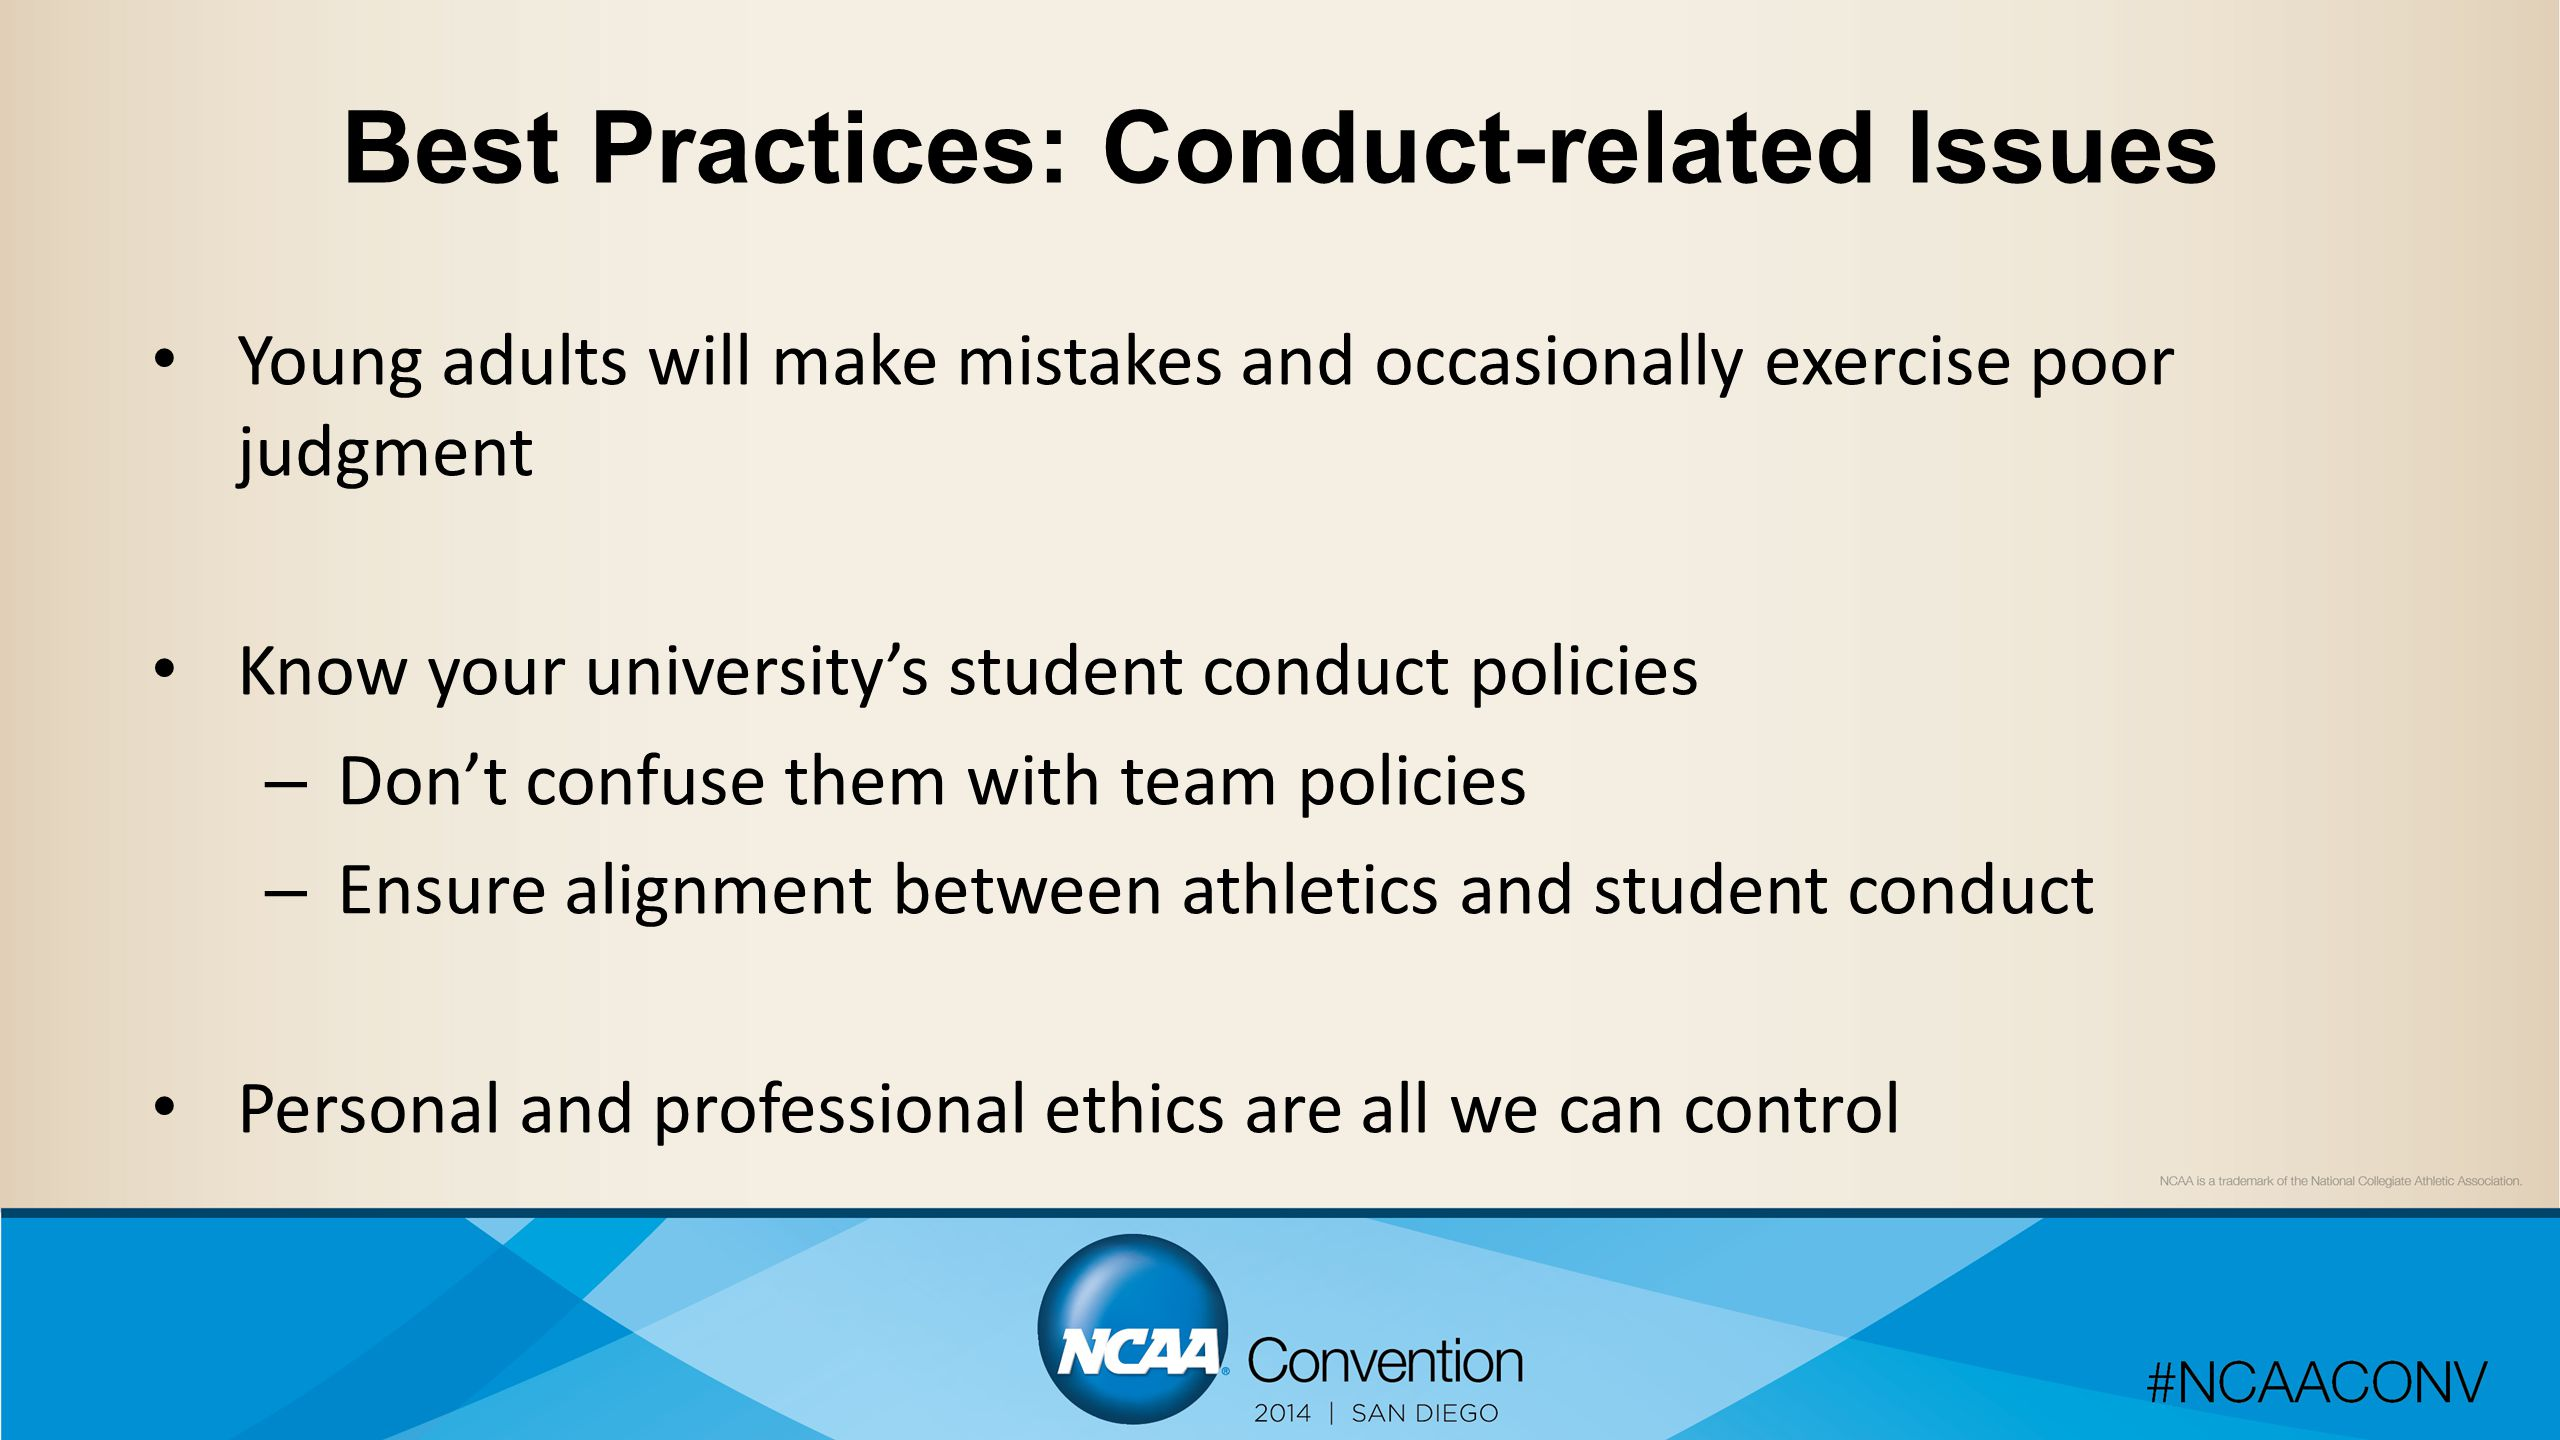 Best Practices: Conduct-related Issues Young adults will make mistakes and occasionally exercise poor judgment Know your university's student conduct policies – Don't confuse them with team policies – Ensure alignment between athletics and student conduct Personal and professional ethics are all we can control